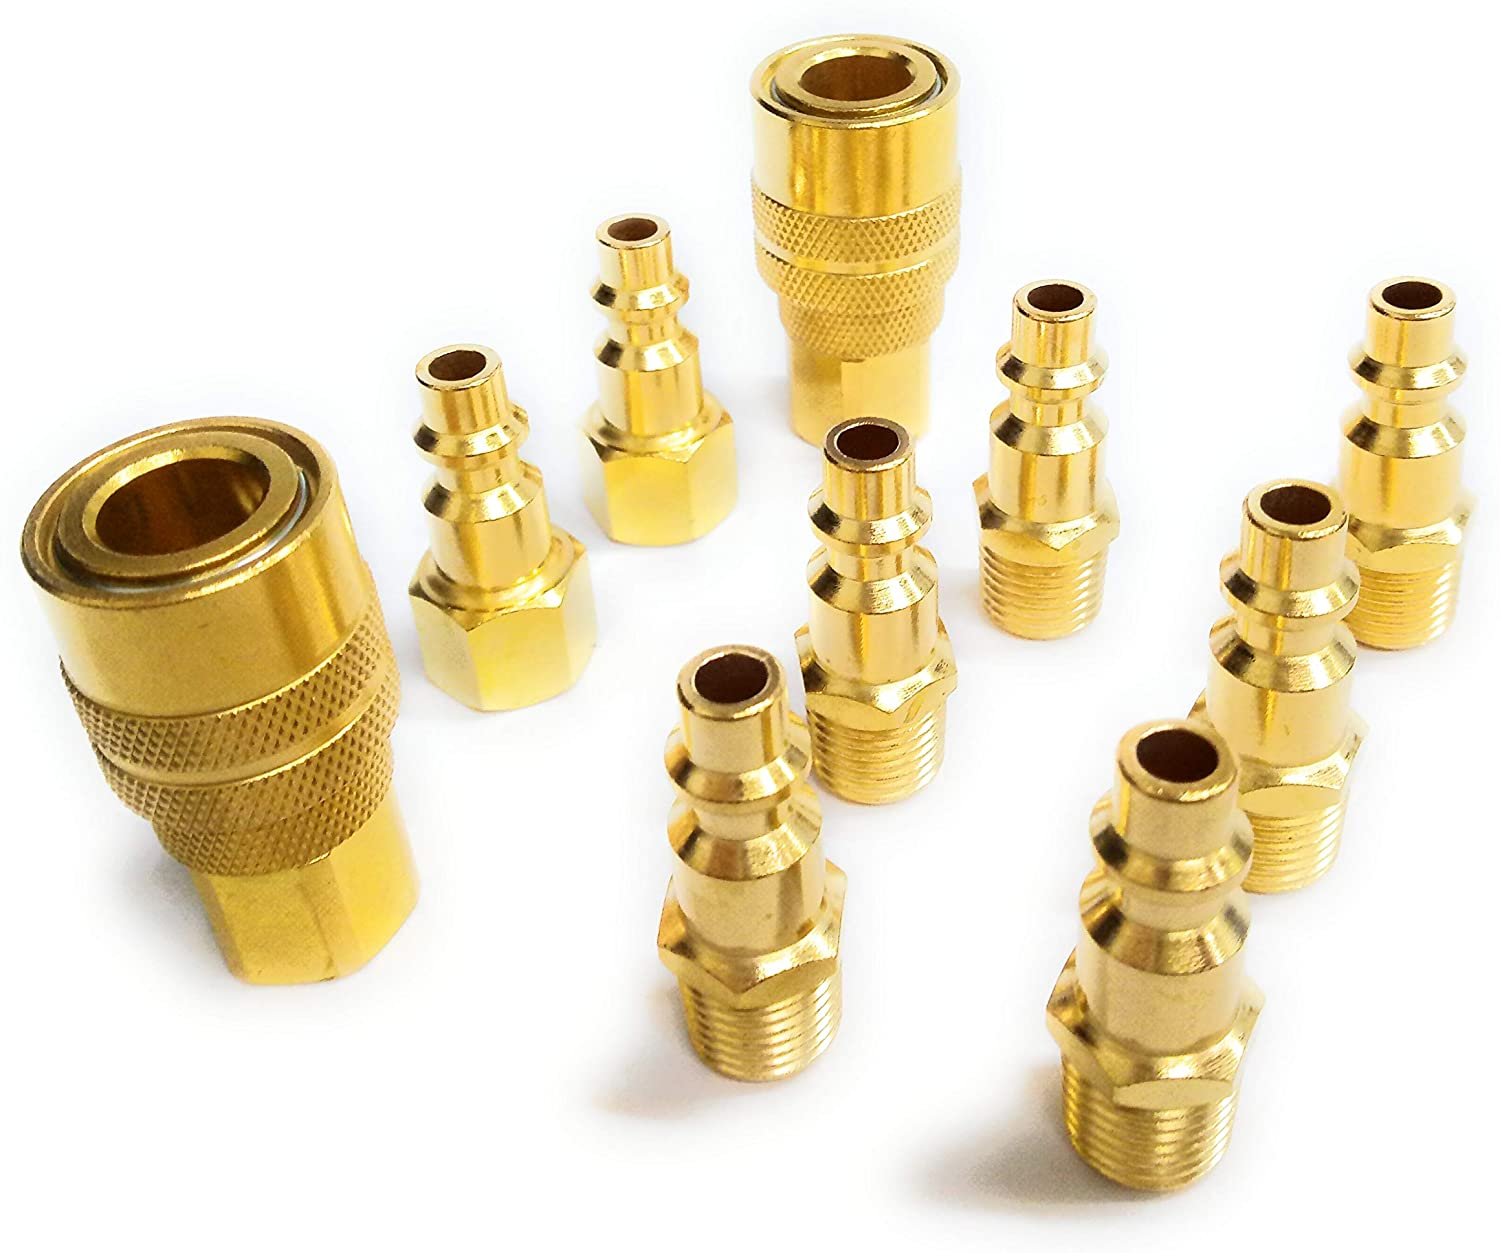 1/4-Inch Brass Industrial Coupler Kit, 10 Pieces, NPT Type D, Quick Connect Air Coupler Fittings